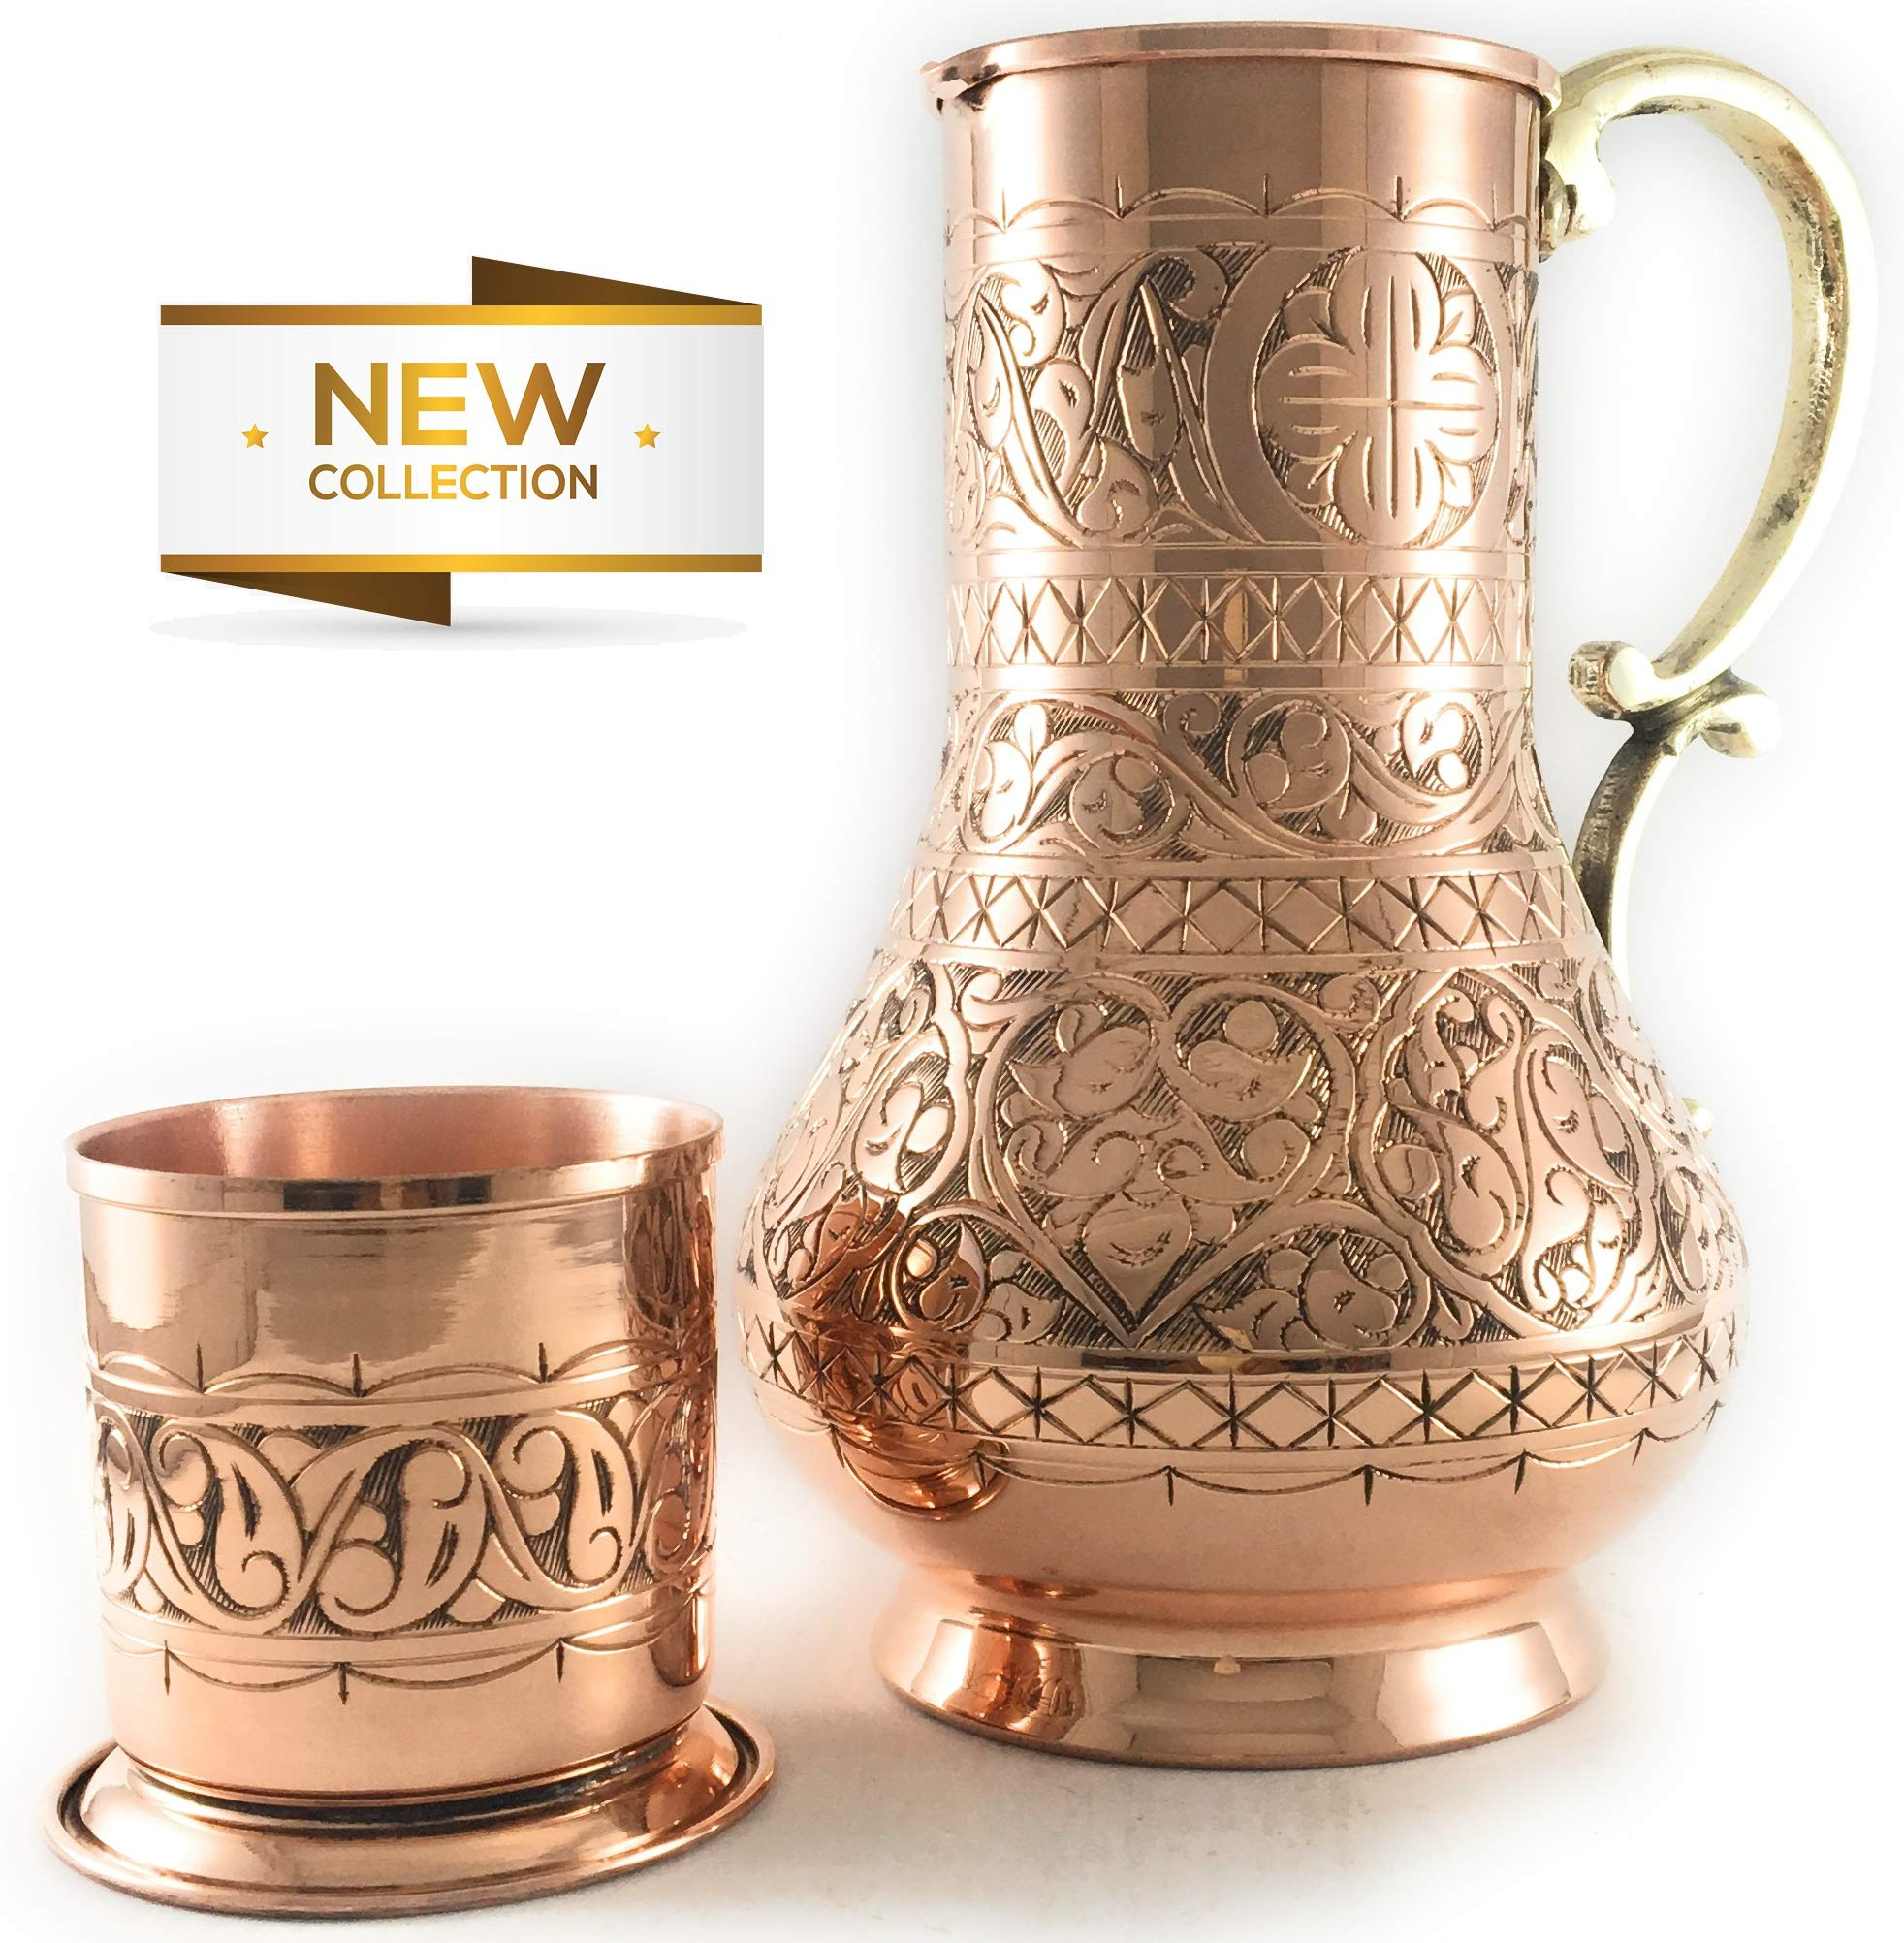 The Silk Road Trade - KS Series - NEW 2019-45oz Copper Pitcher and 7.7oz Cup Set with Lid, Moscow Mule Water Jug, Ice Tea and Juice Beverage, Desktop/Bedside Night Water Carafe Ayurvedic (Engraved) by The Silk Road Trade